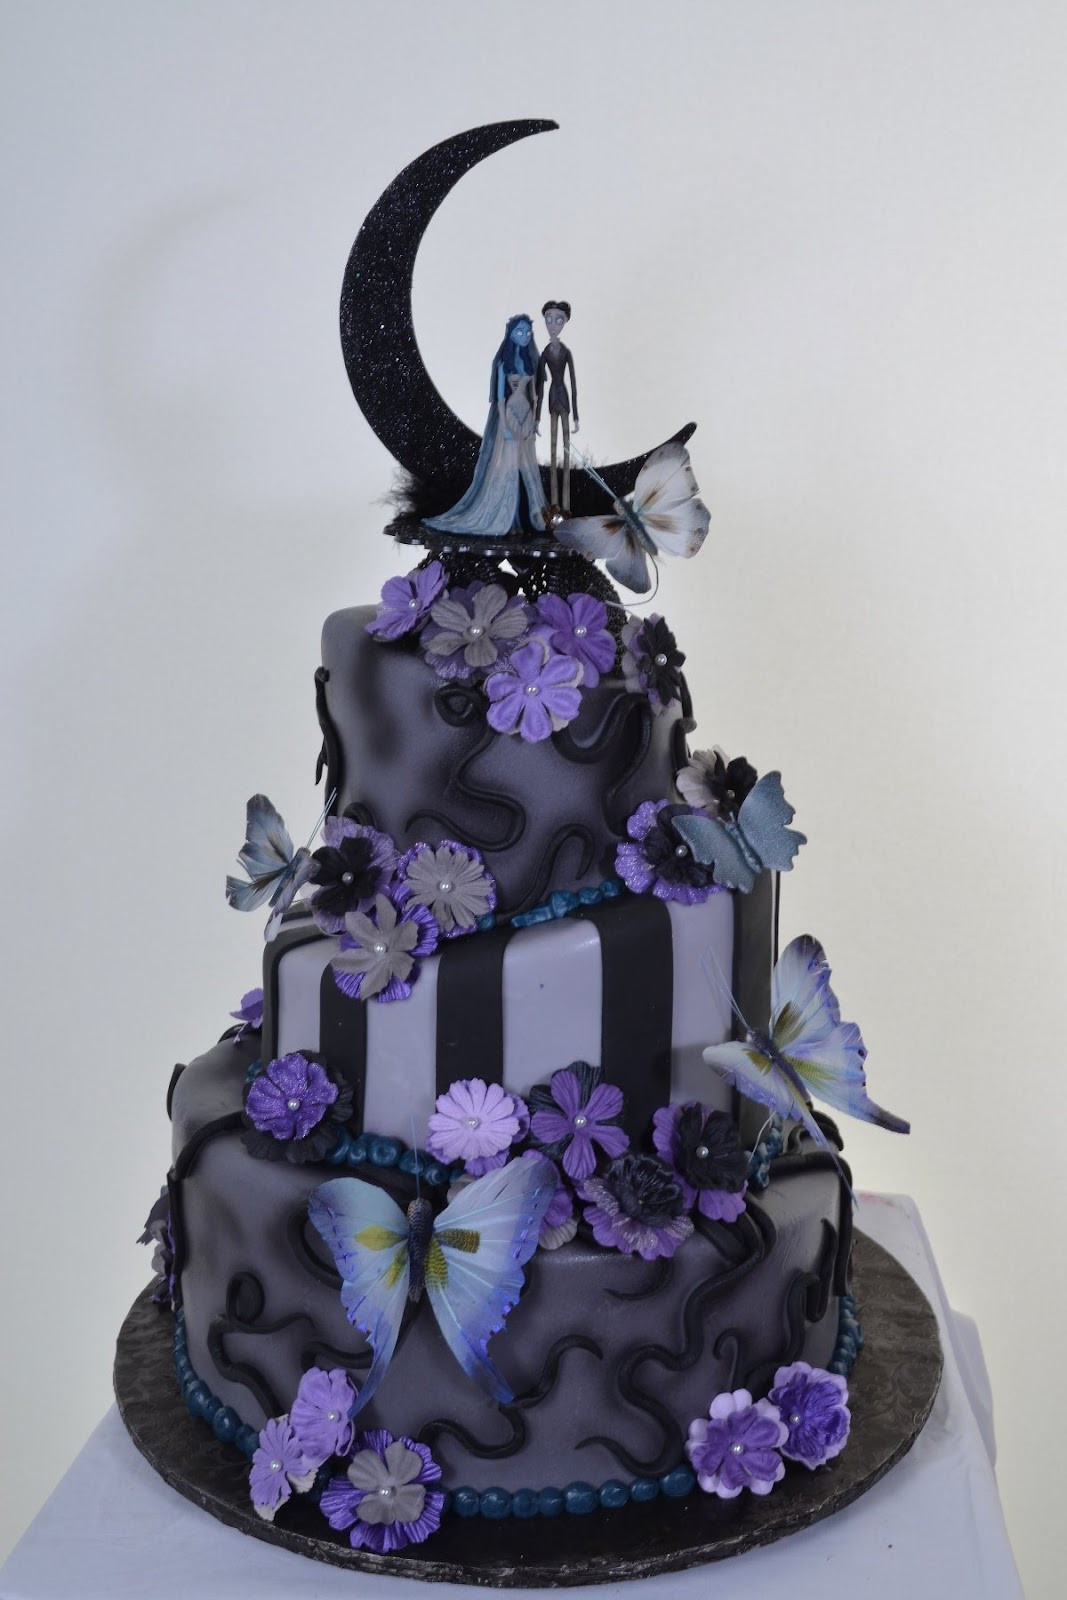 Nightmare Before Christmas Wedding Cakes  Wedding Cakes March 2012